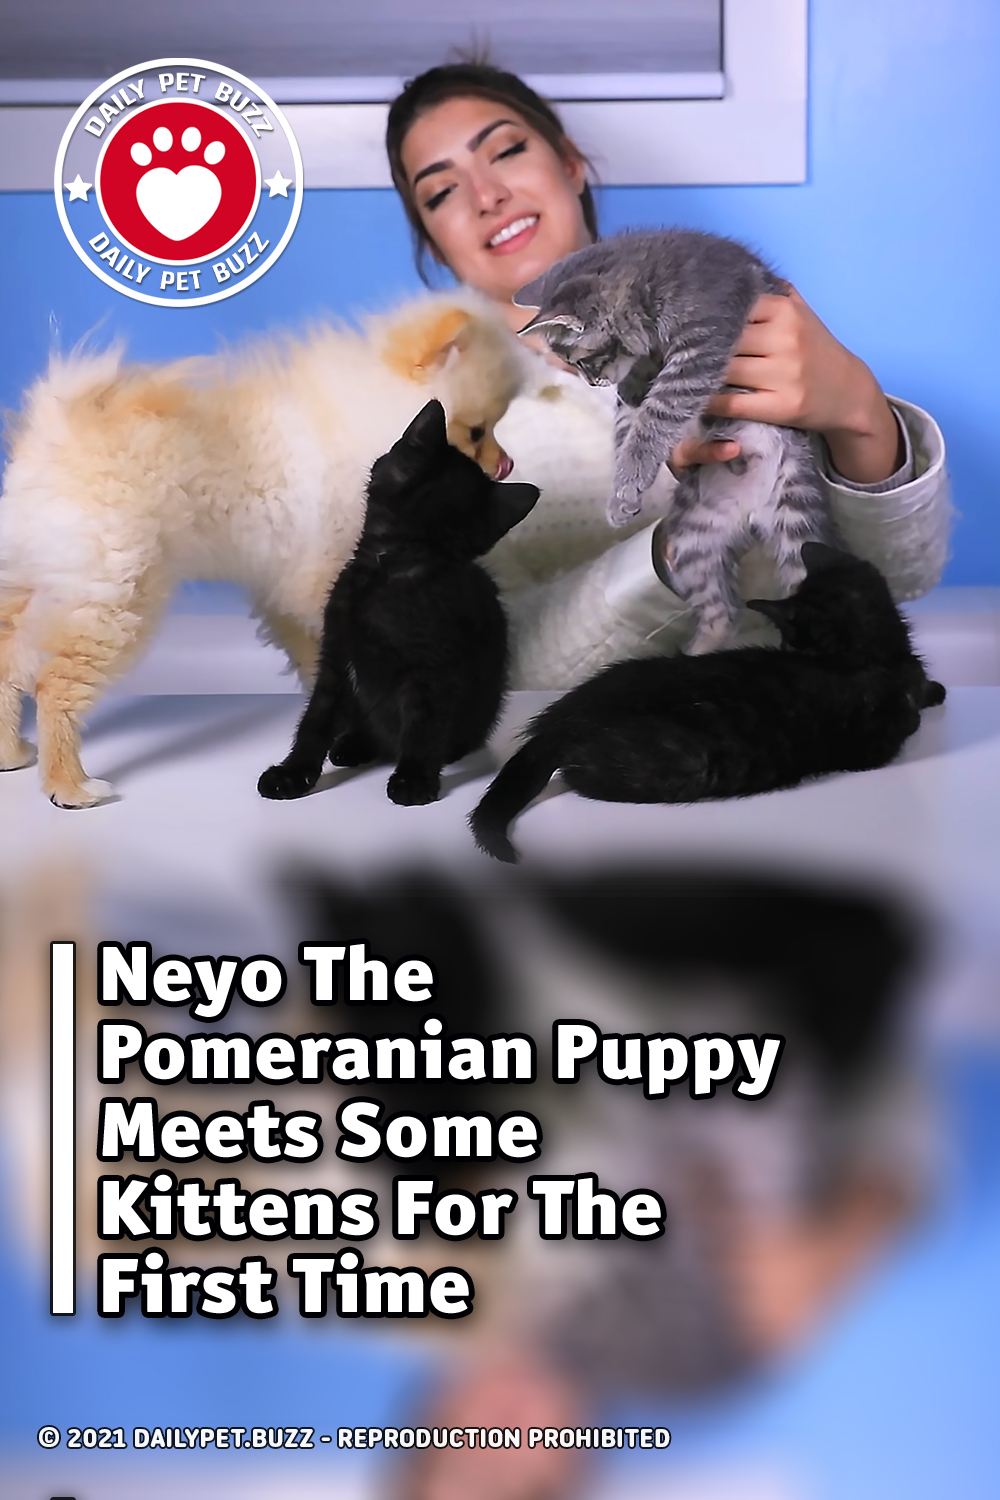 Neyo The Pomeranian Puppy Meets Some Kittens For The First Time